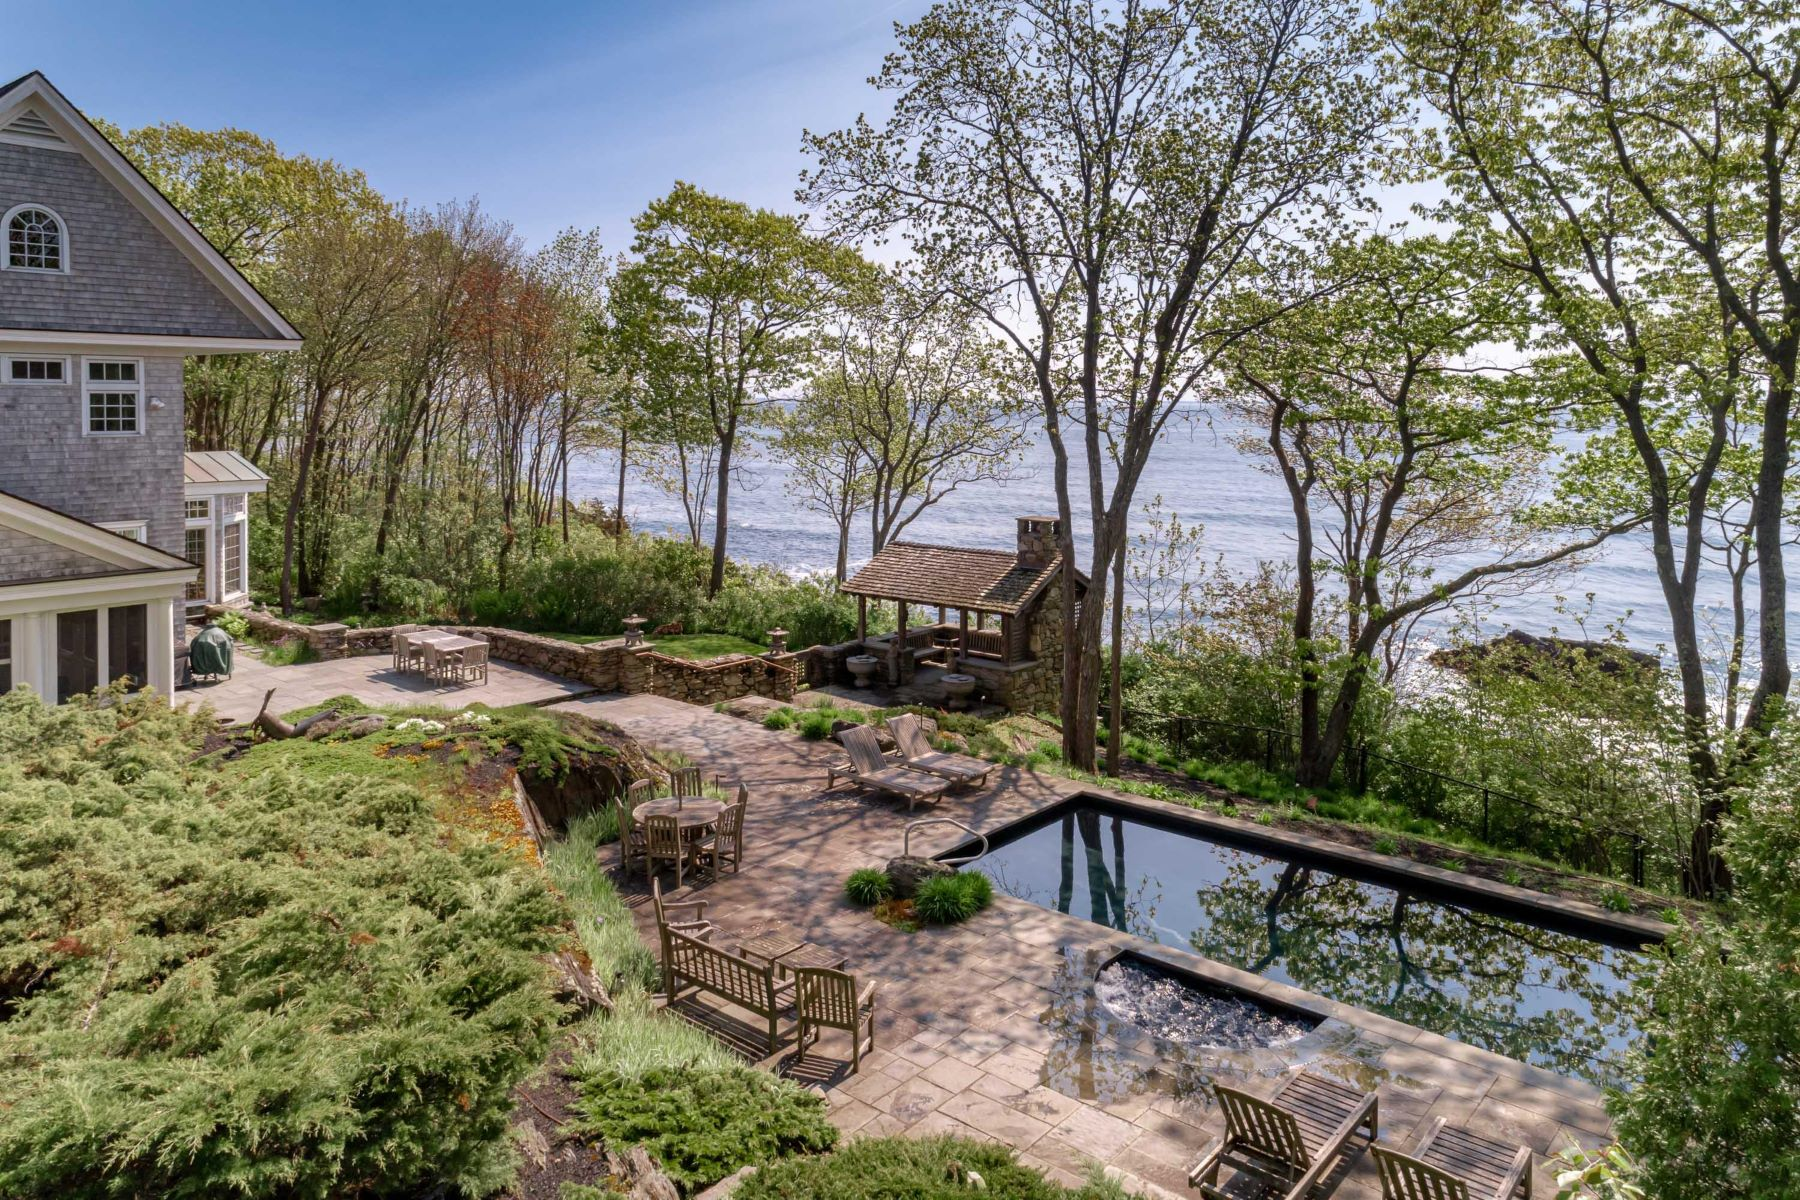 Single Family Homes for Sale at Cape Elizabeth, Maine 04107 United States